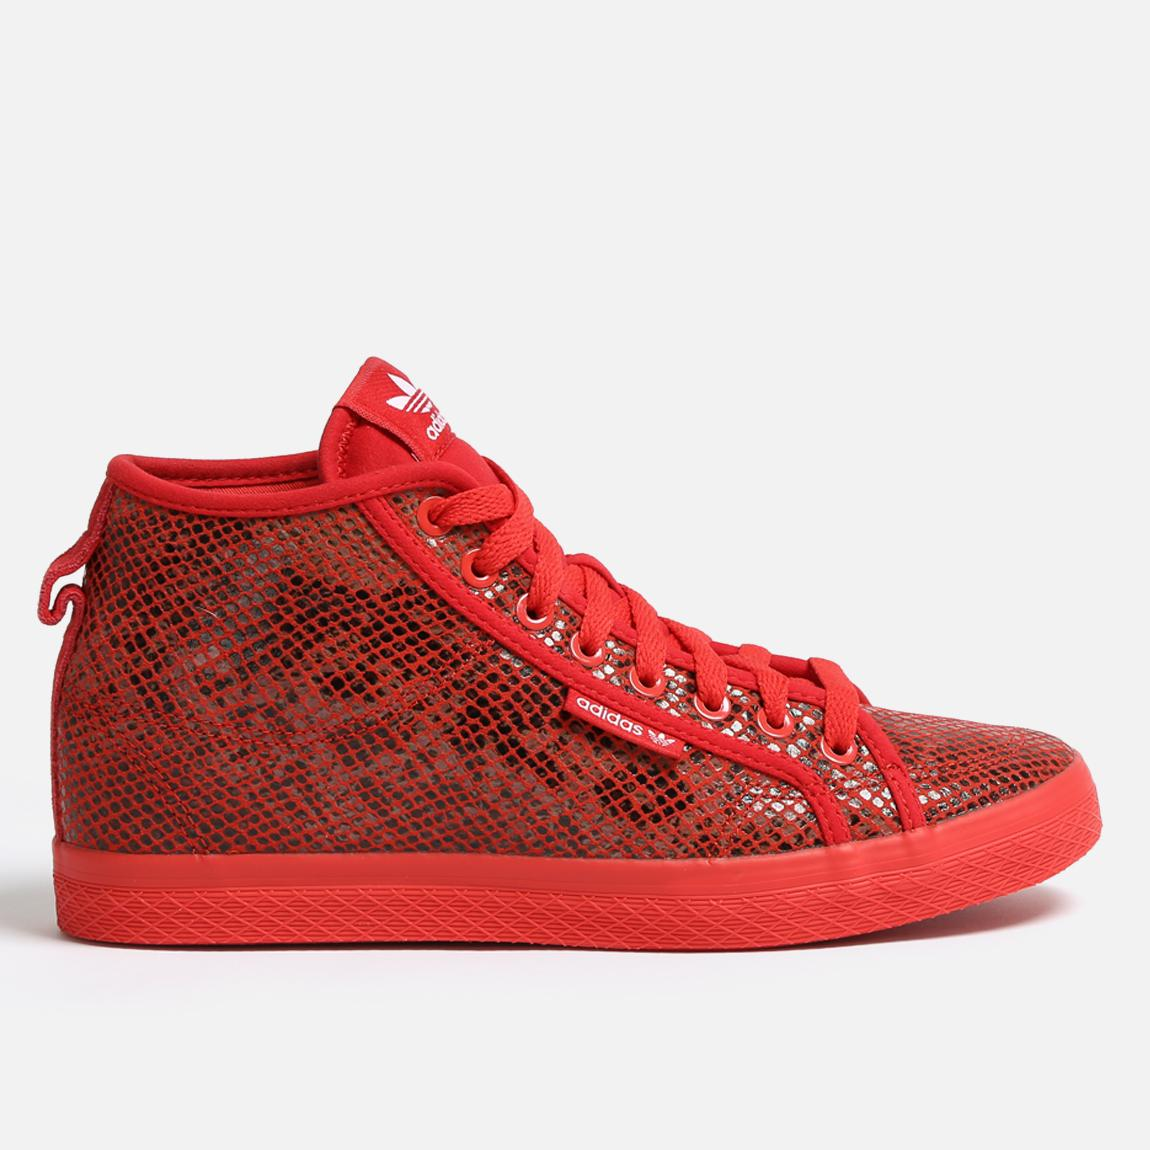 Honey Up Colred Ftwwht Colred Adidas Originals Sneakers